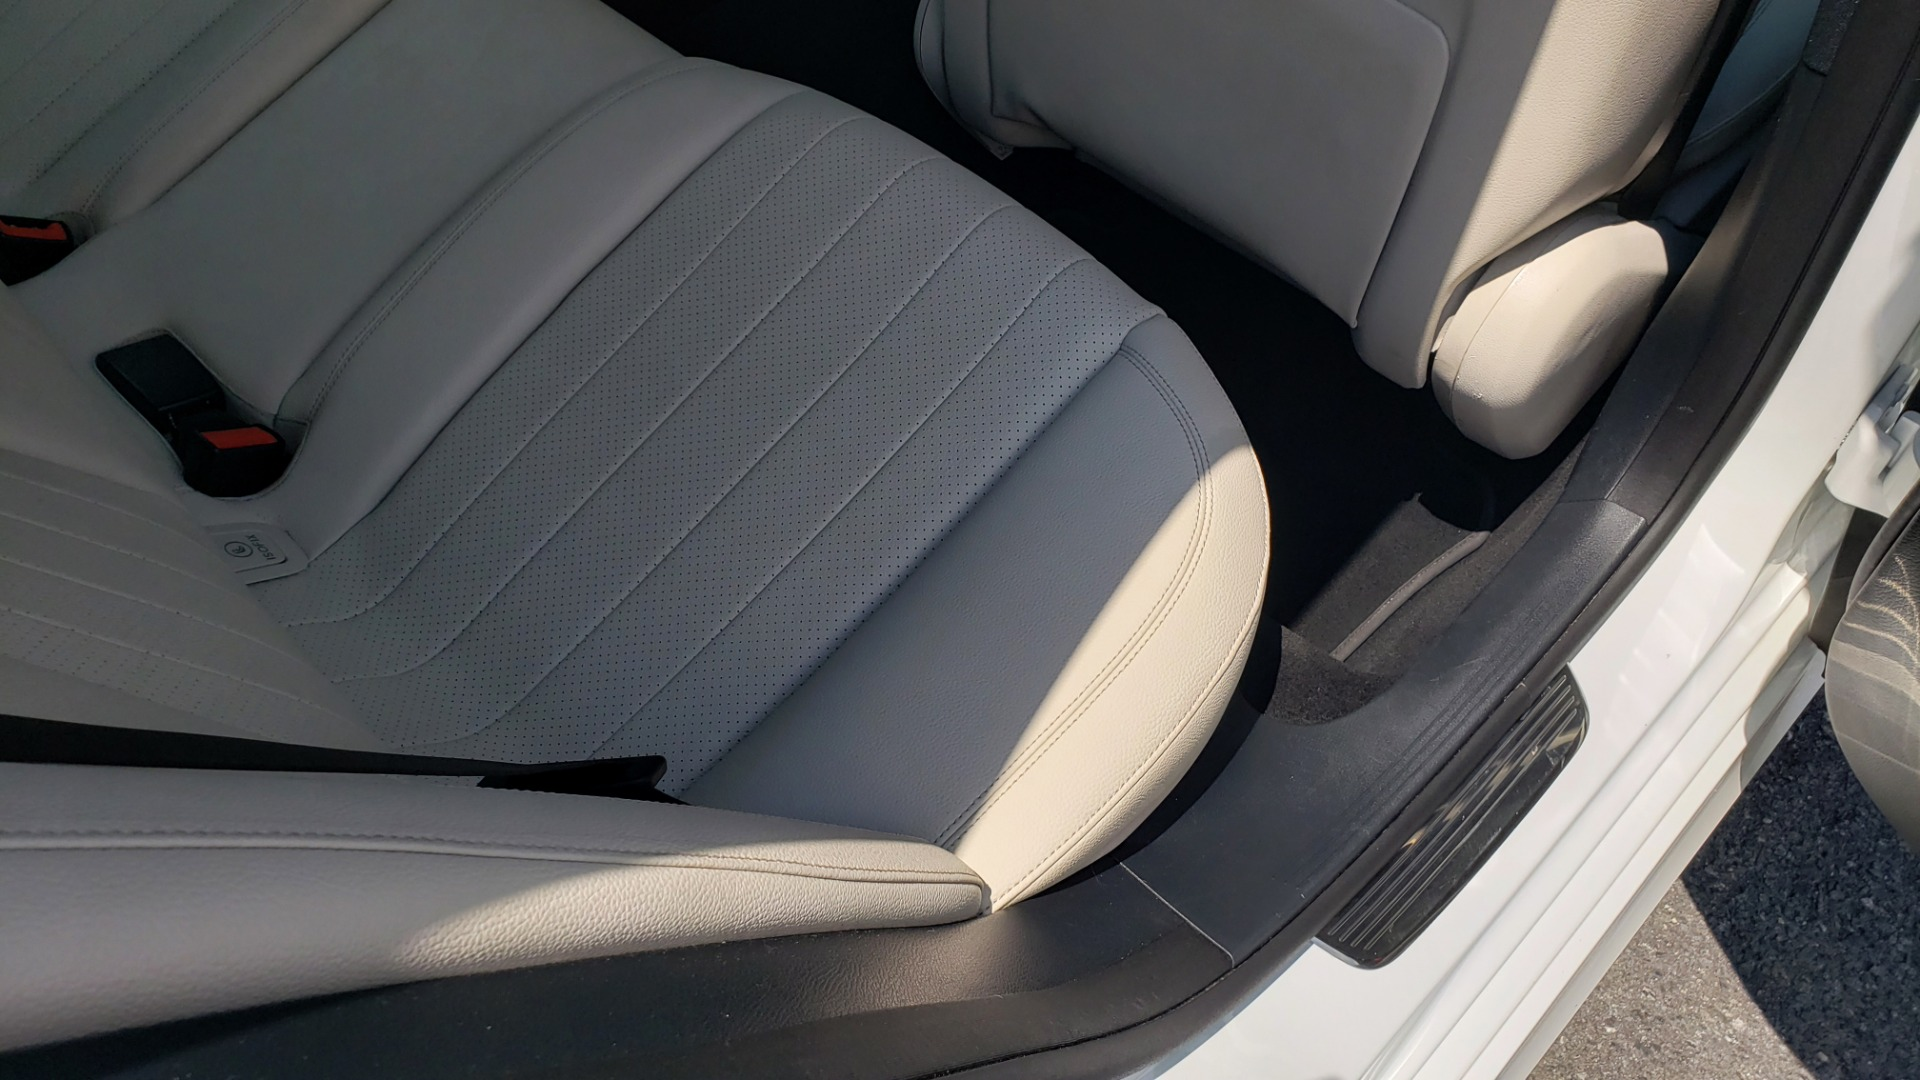 Used 2017 Mercedes-Benz E-CLASS E 300 PREMIUM / SPORT / NAV / SUNROOF / HTD STS / BSM / REARVIEW for sale $27,995 at Formula Imports in Charlotte NC 28227 69